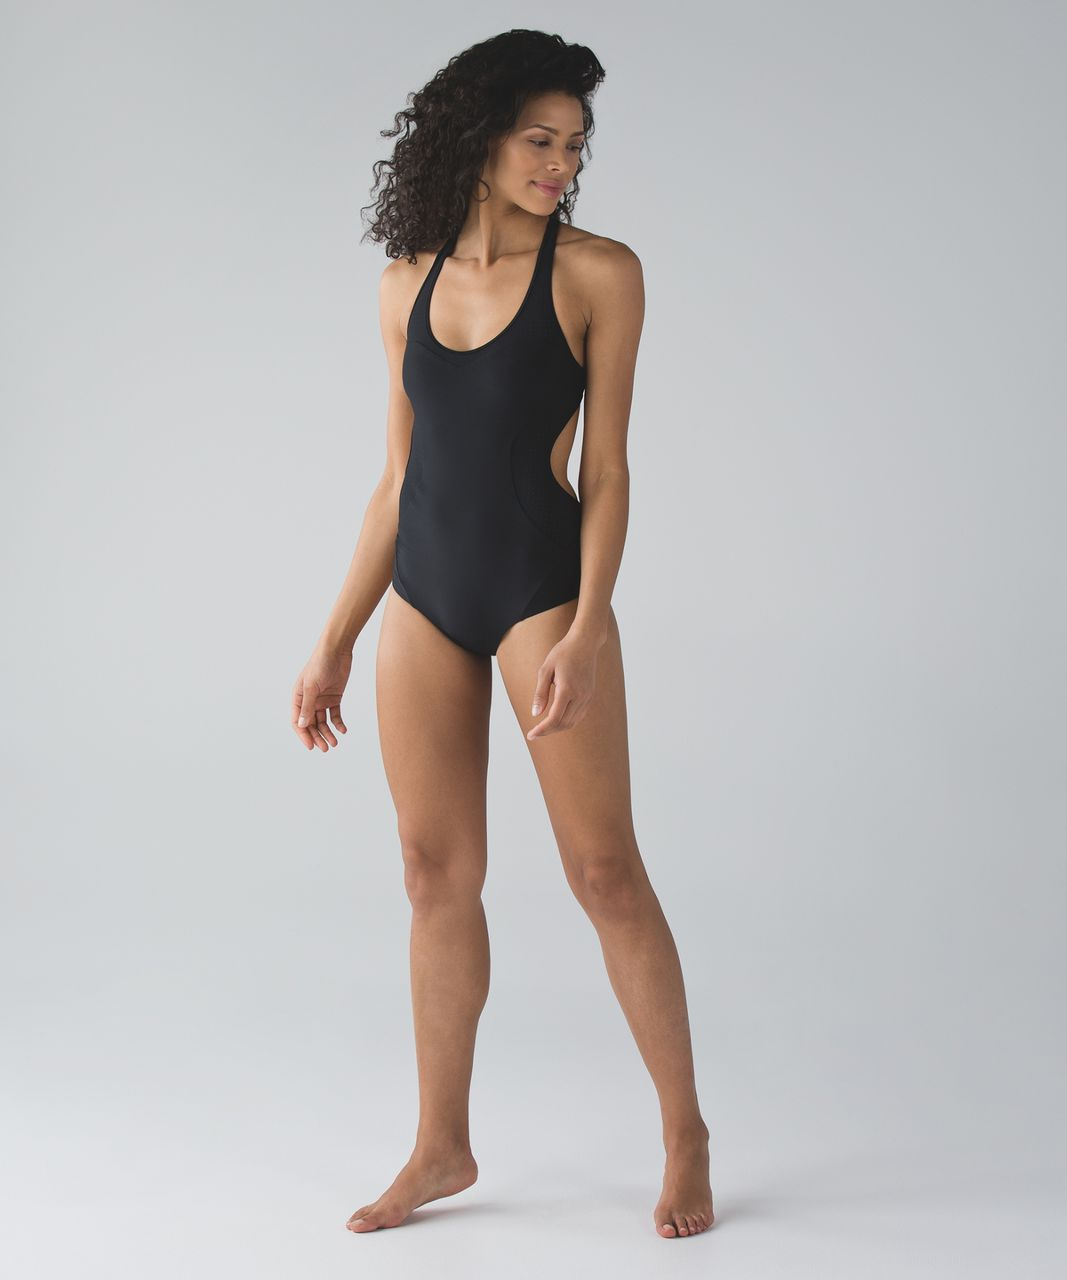 Lululemon Tidal Flow Racerback One Piece - Black